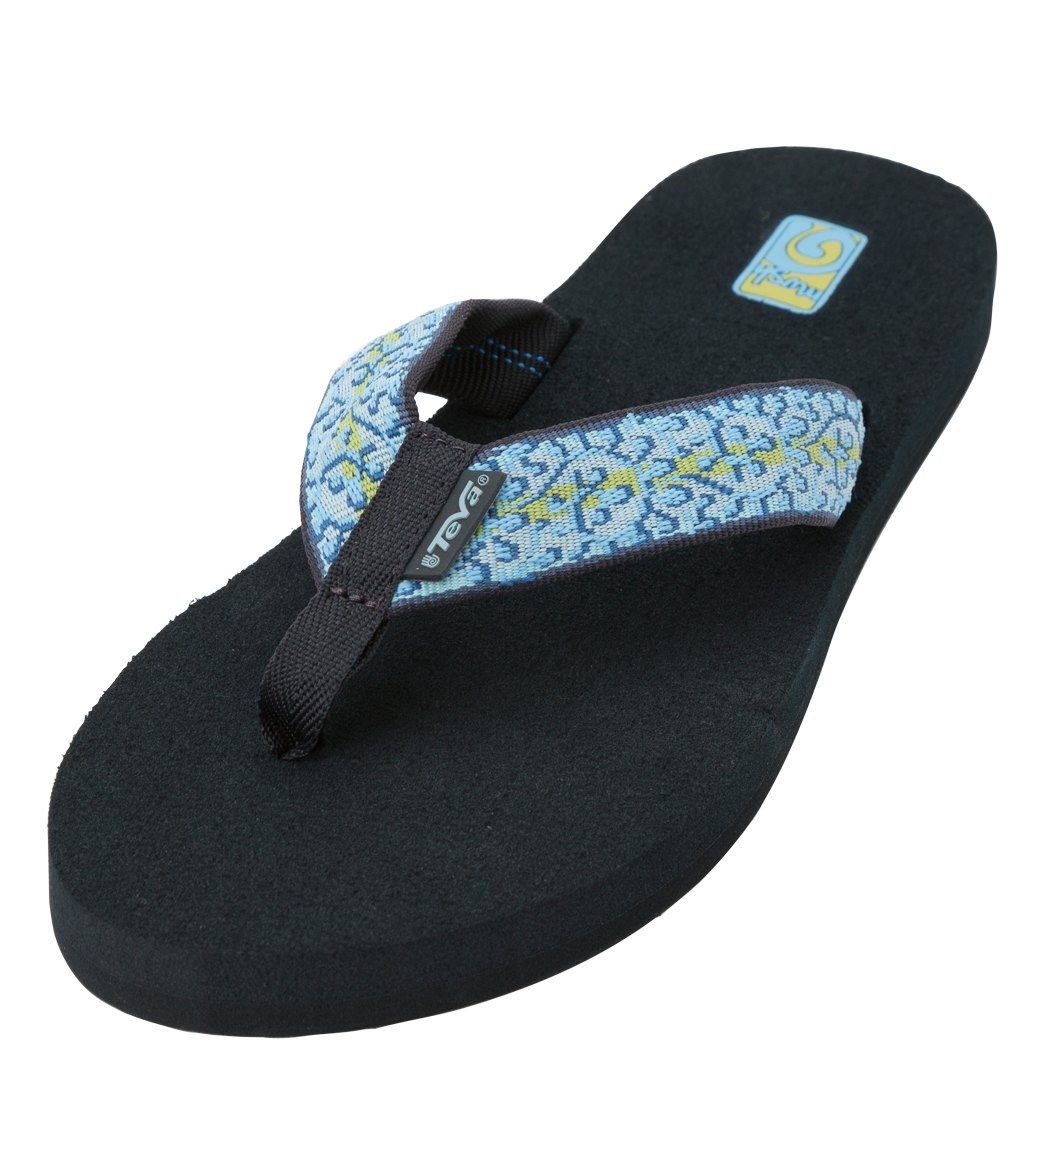 9da108de0629c Teva Women s Mush II Flip Flop at SwimOutlet.com